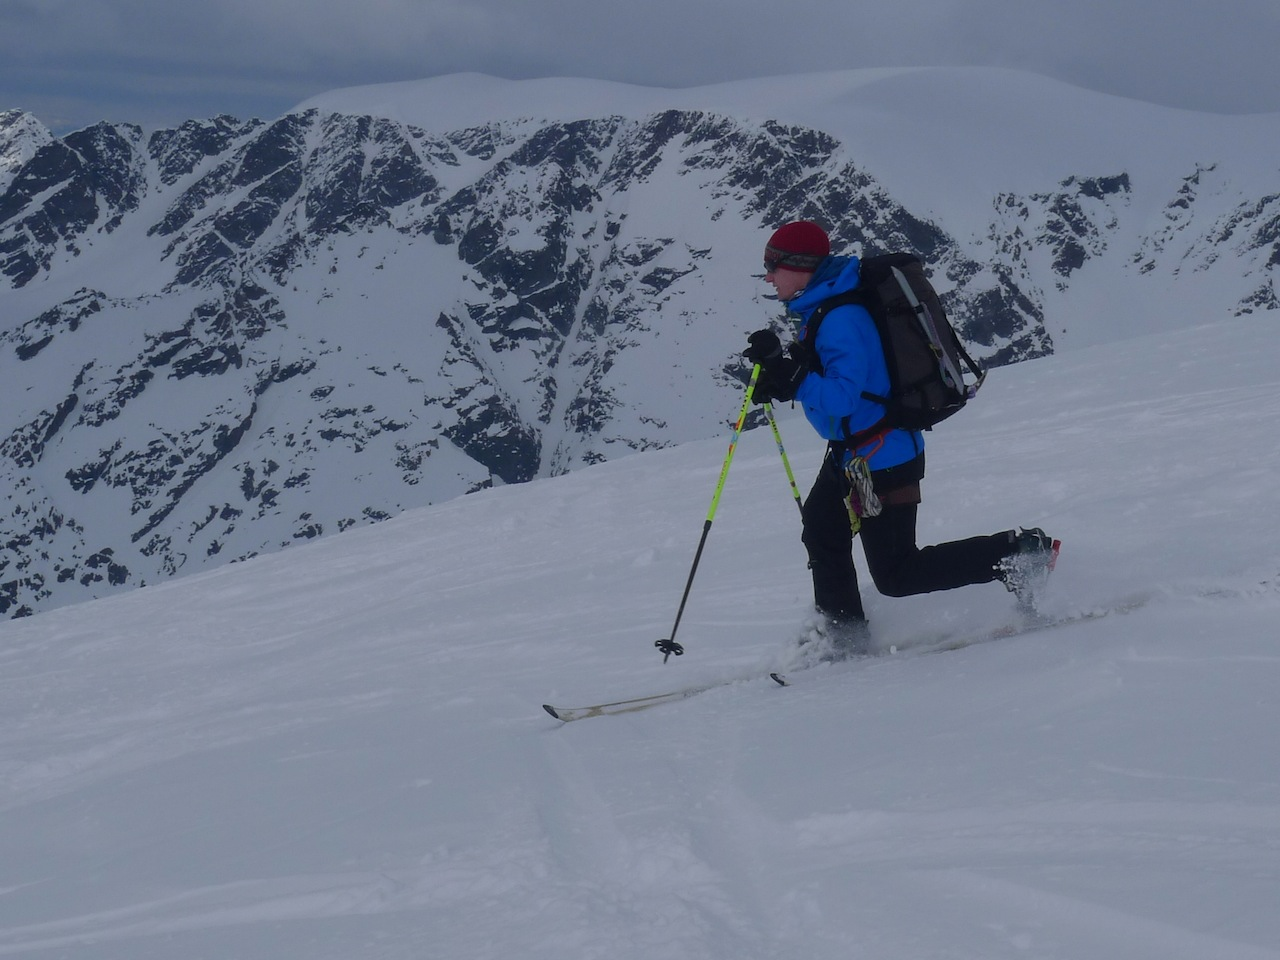 Skiing down Holmbuktind, Lyngen. photo: Dave Smith, 227 kb